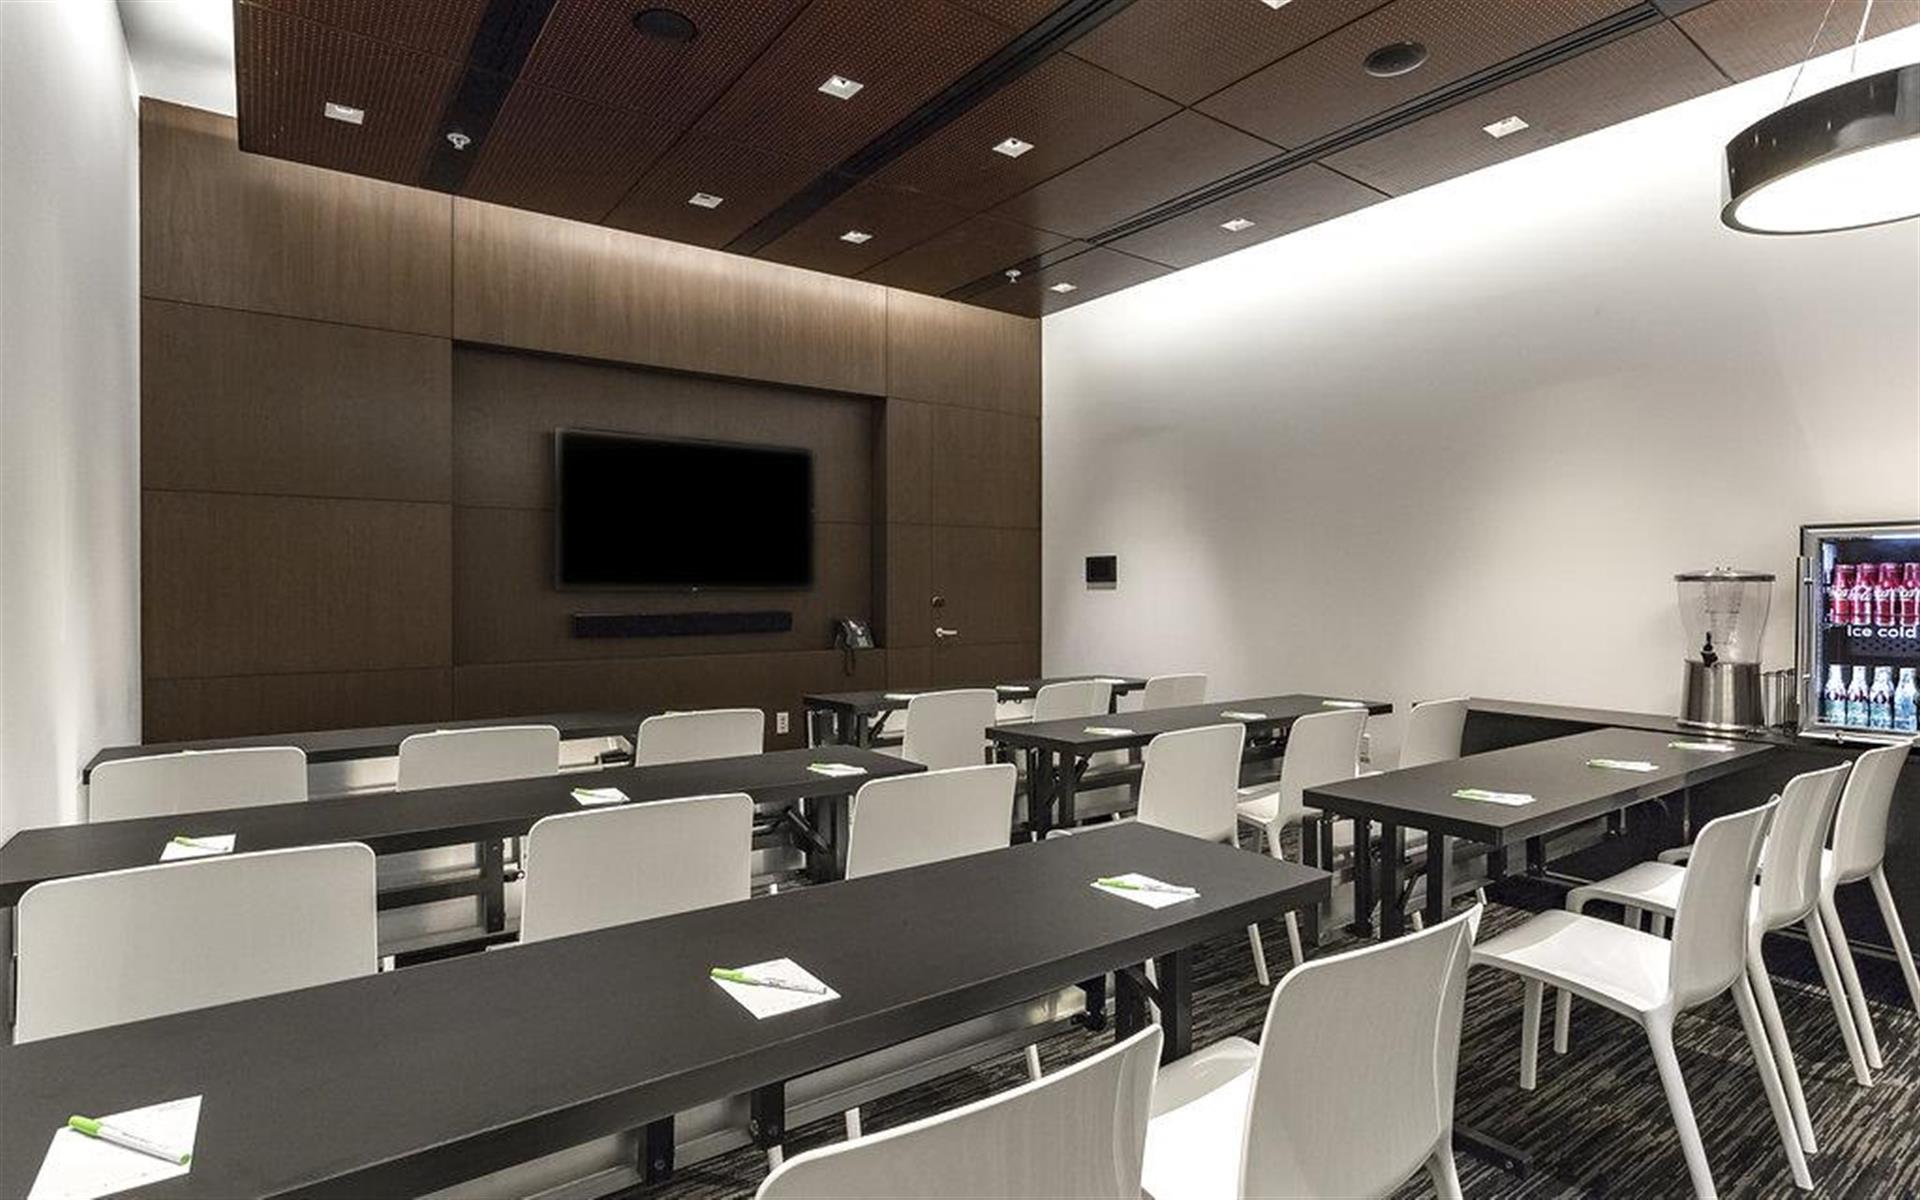 Courtyard By Marriott Long Island City New York Manhattan: Private Meeting Room For 18 At Courtyard By Marriott Long